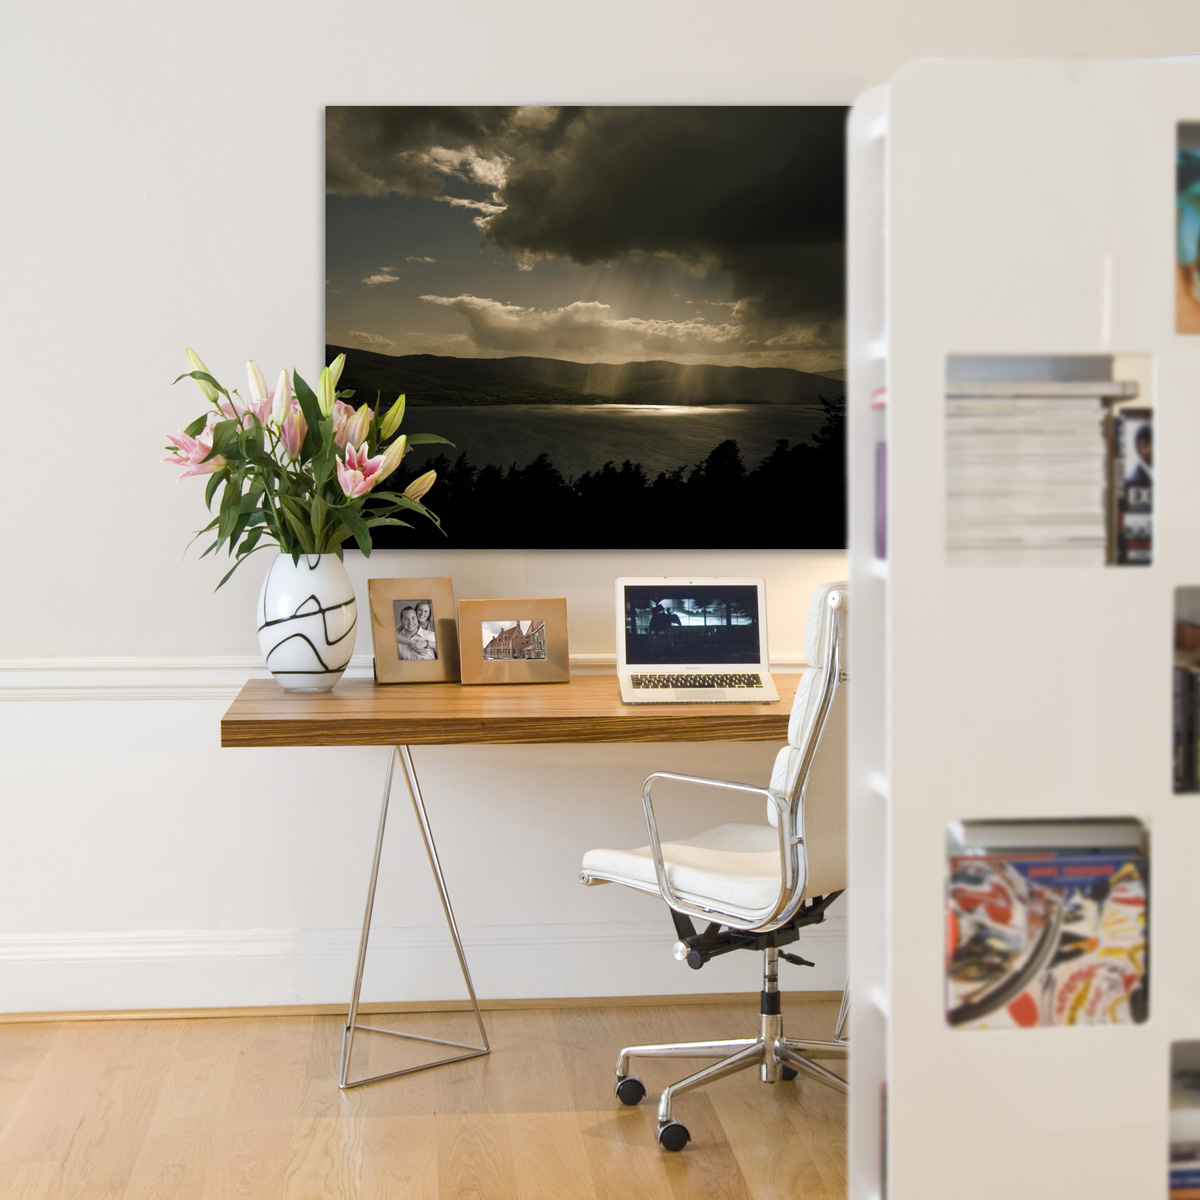 Landscape photograph in office environment showing Carlingford Lough.